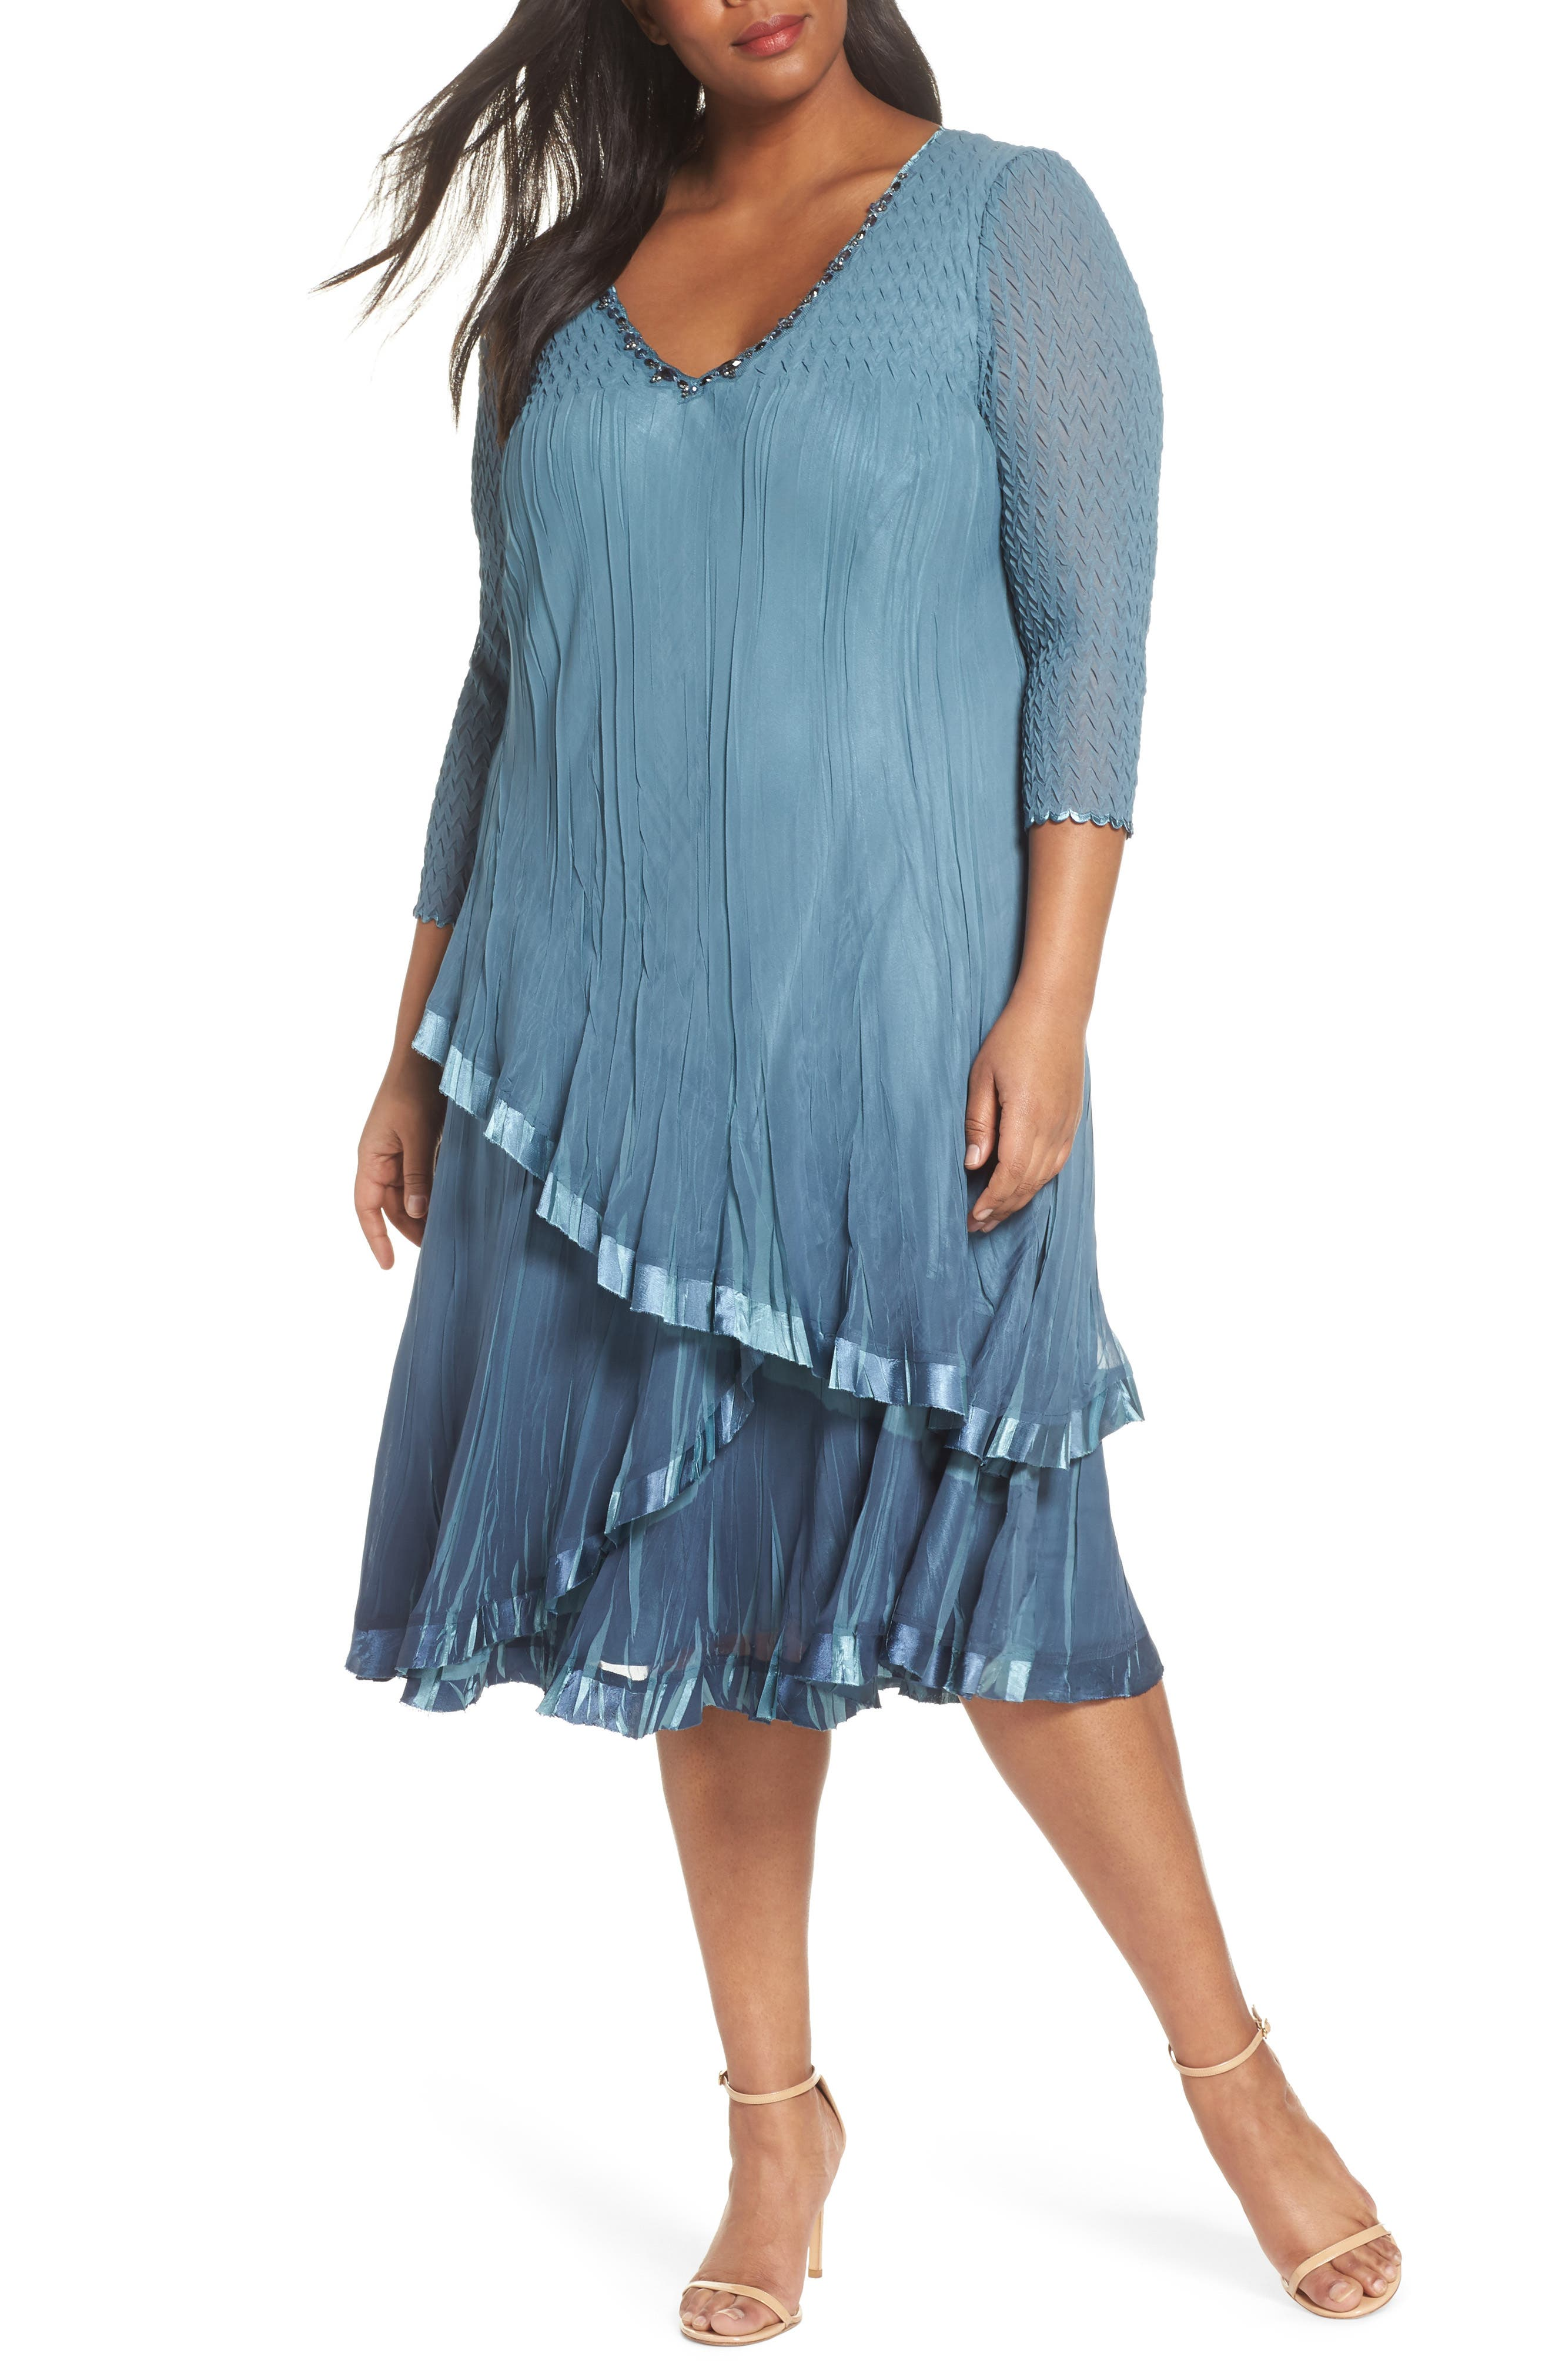 Bead Trim Tiered Chiffon Dress,                             Main thumbnail 1, color,                             Silver Blue Night Ombre